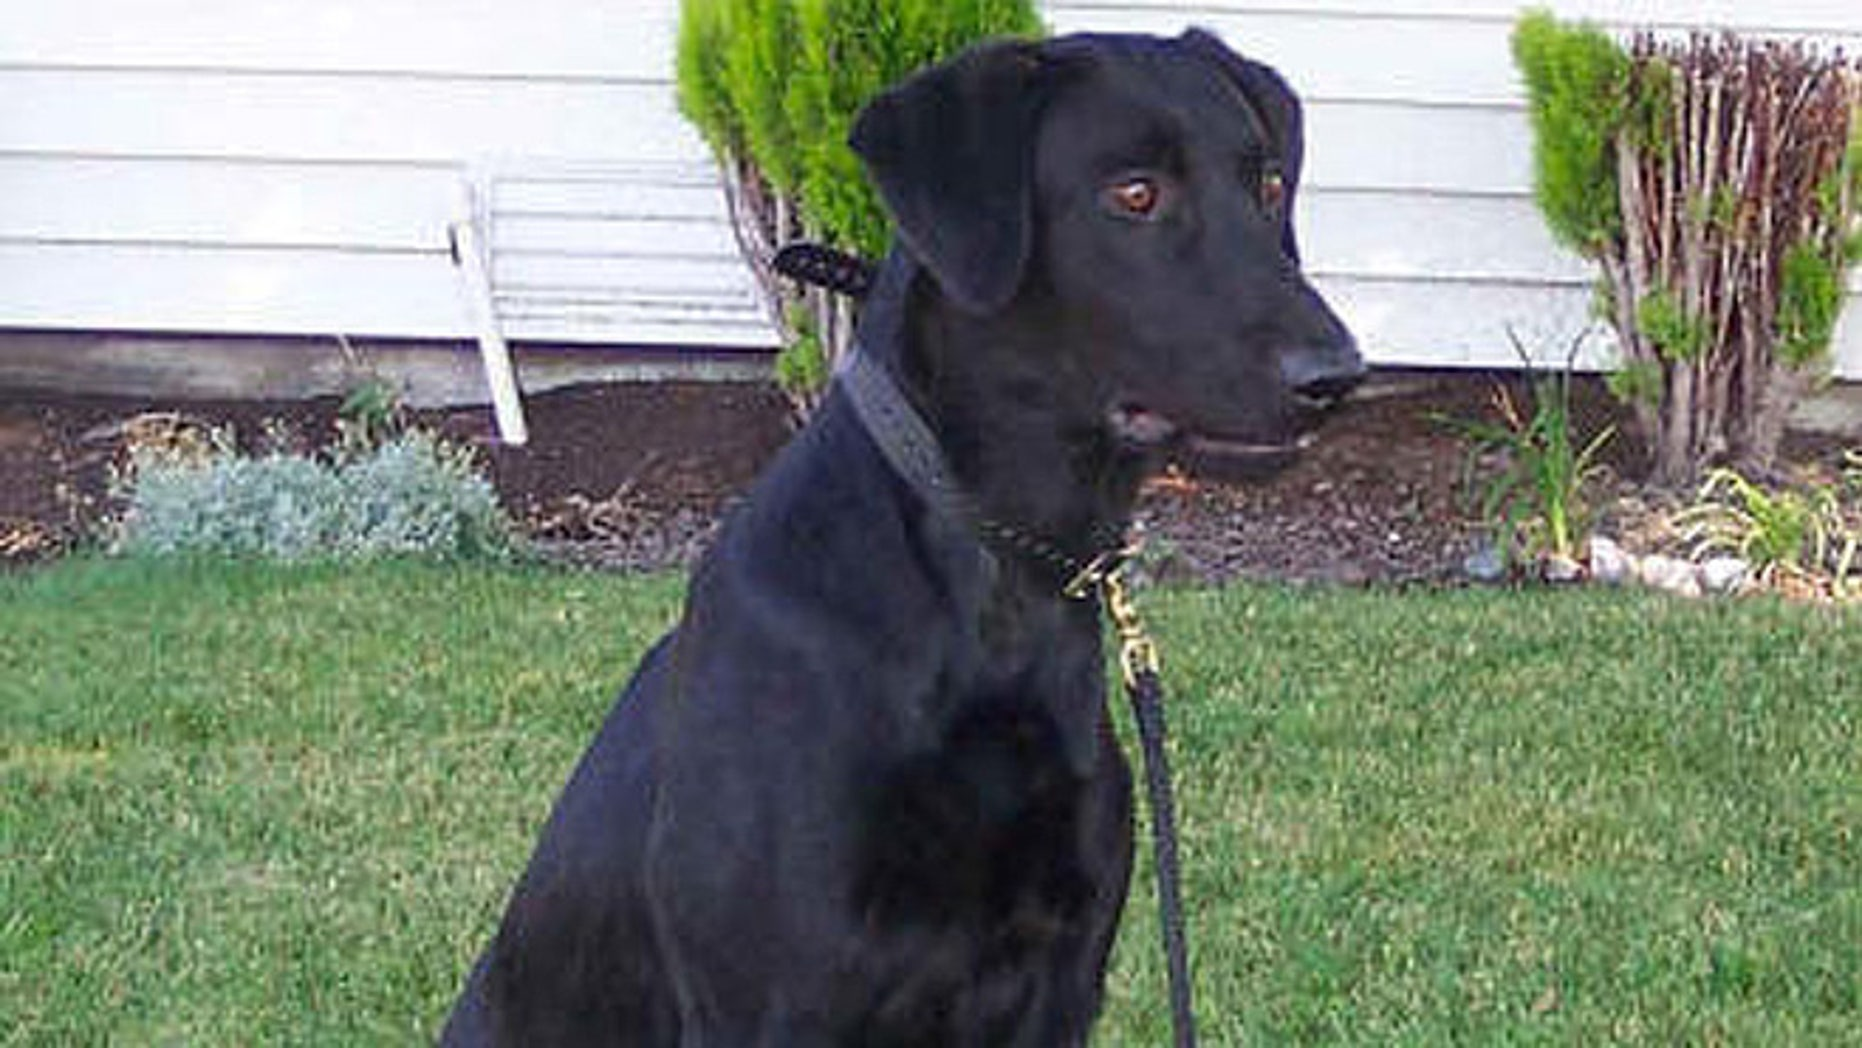 One of the dogs, a 1-year-old black Labrador retriever seen here who was the officer's personal pet, reportedly died in a veterinary hospital the next day. (Richmond Police Department)